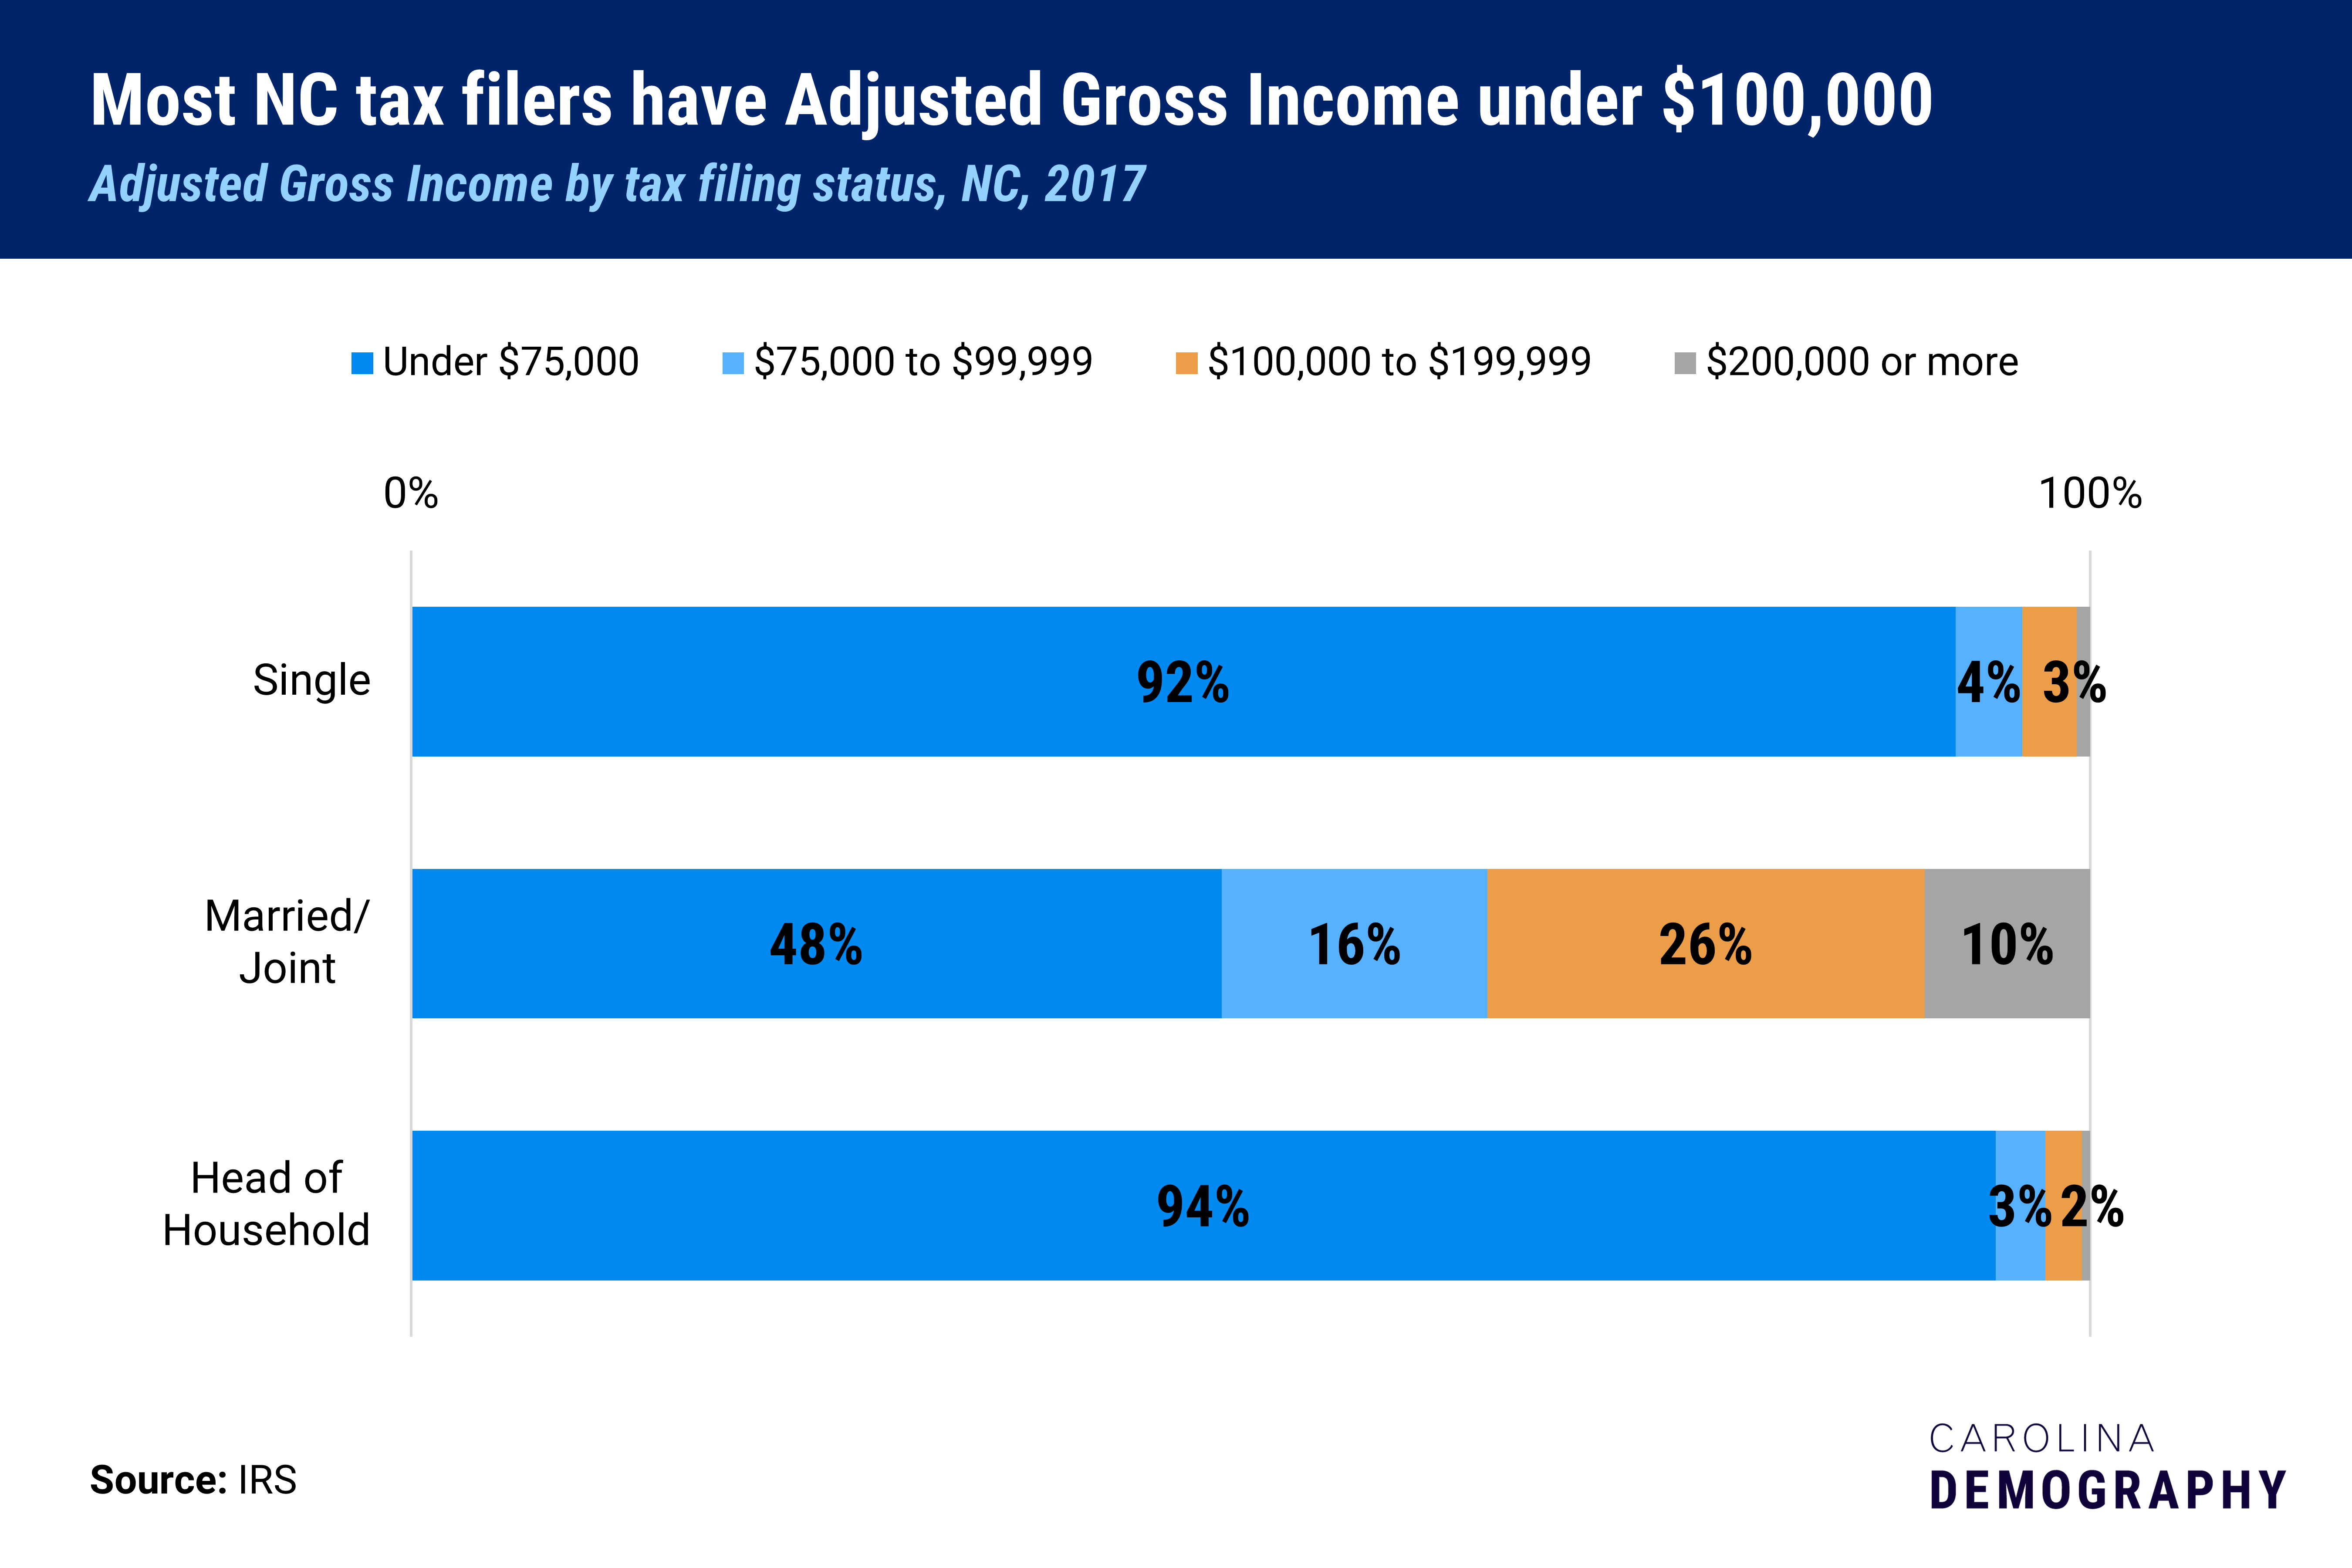 Chart Title: Most NC tax filers have AGI under $100,000 Subtitle: Adjusted gross income by tax filing status, NC, 2017 Source: IRS